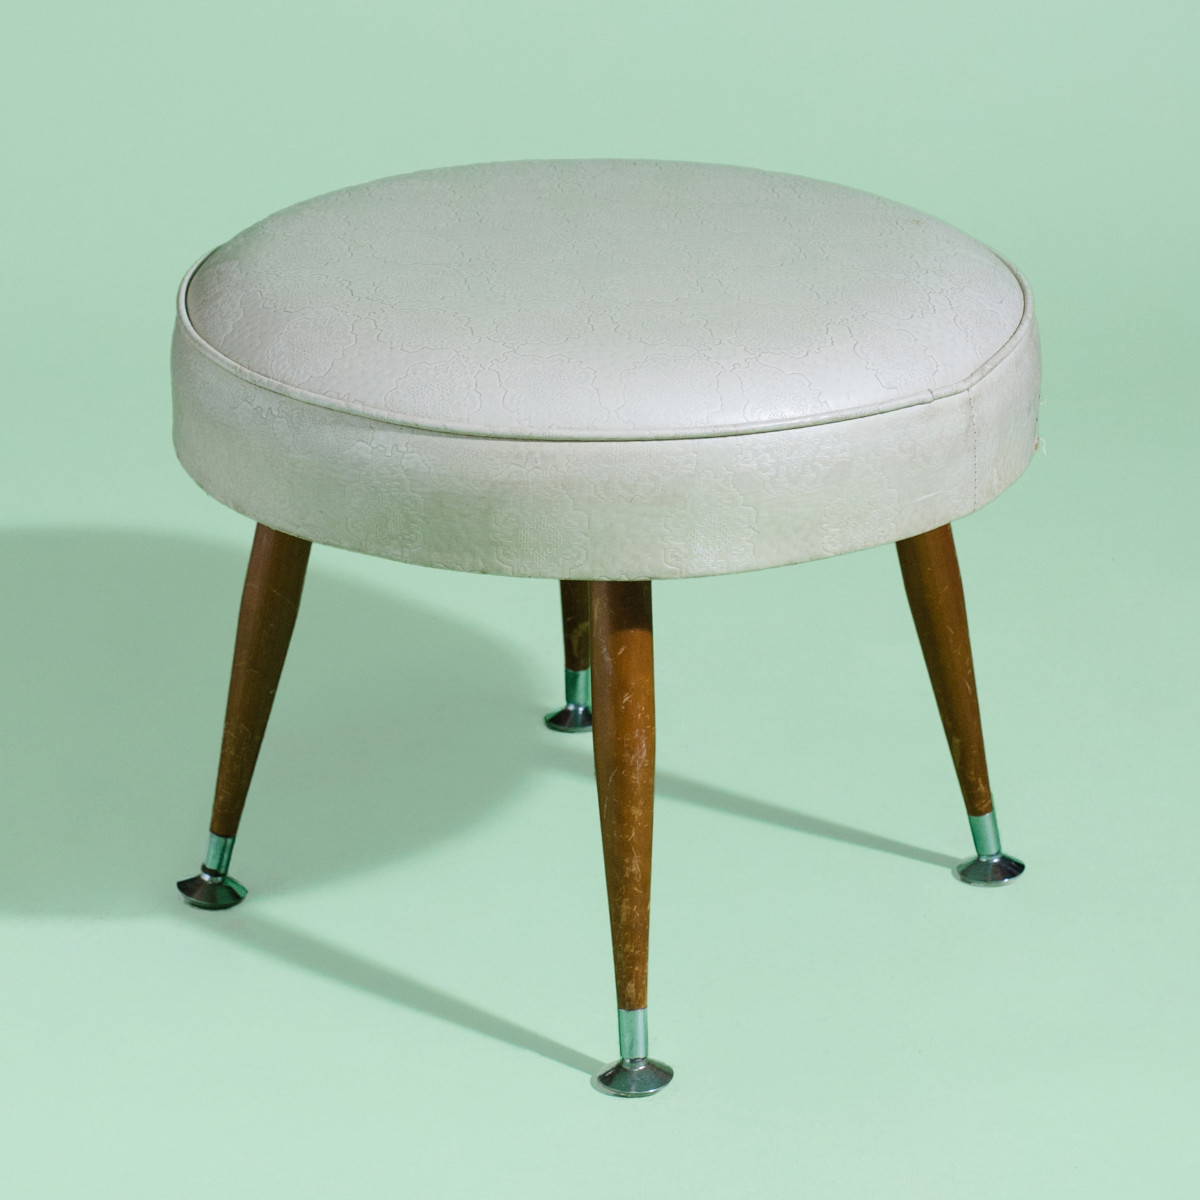 LN029- Herby The Cream Footstool-1